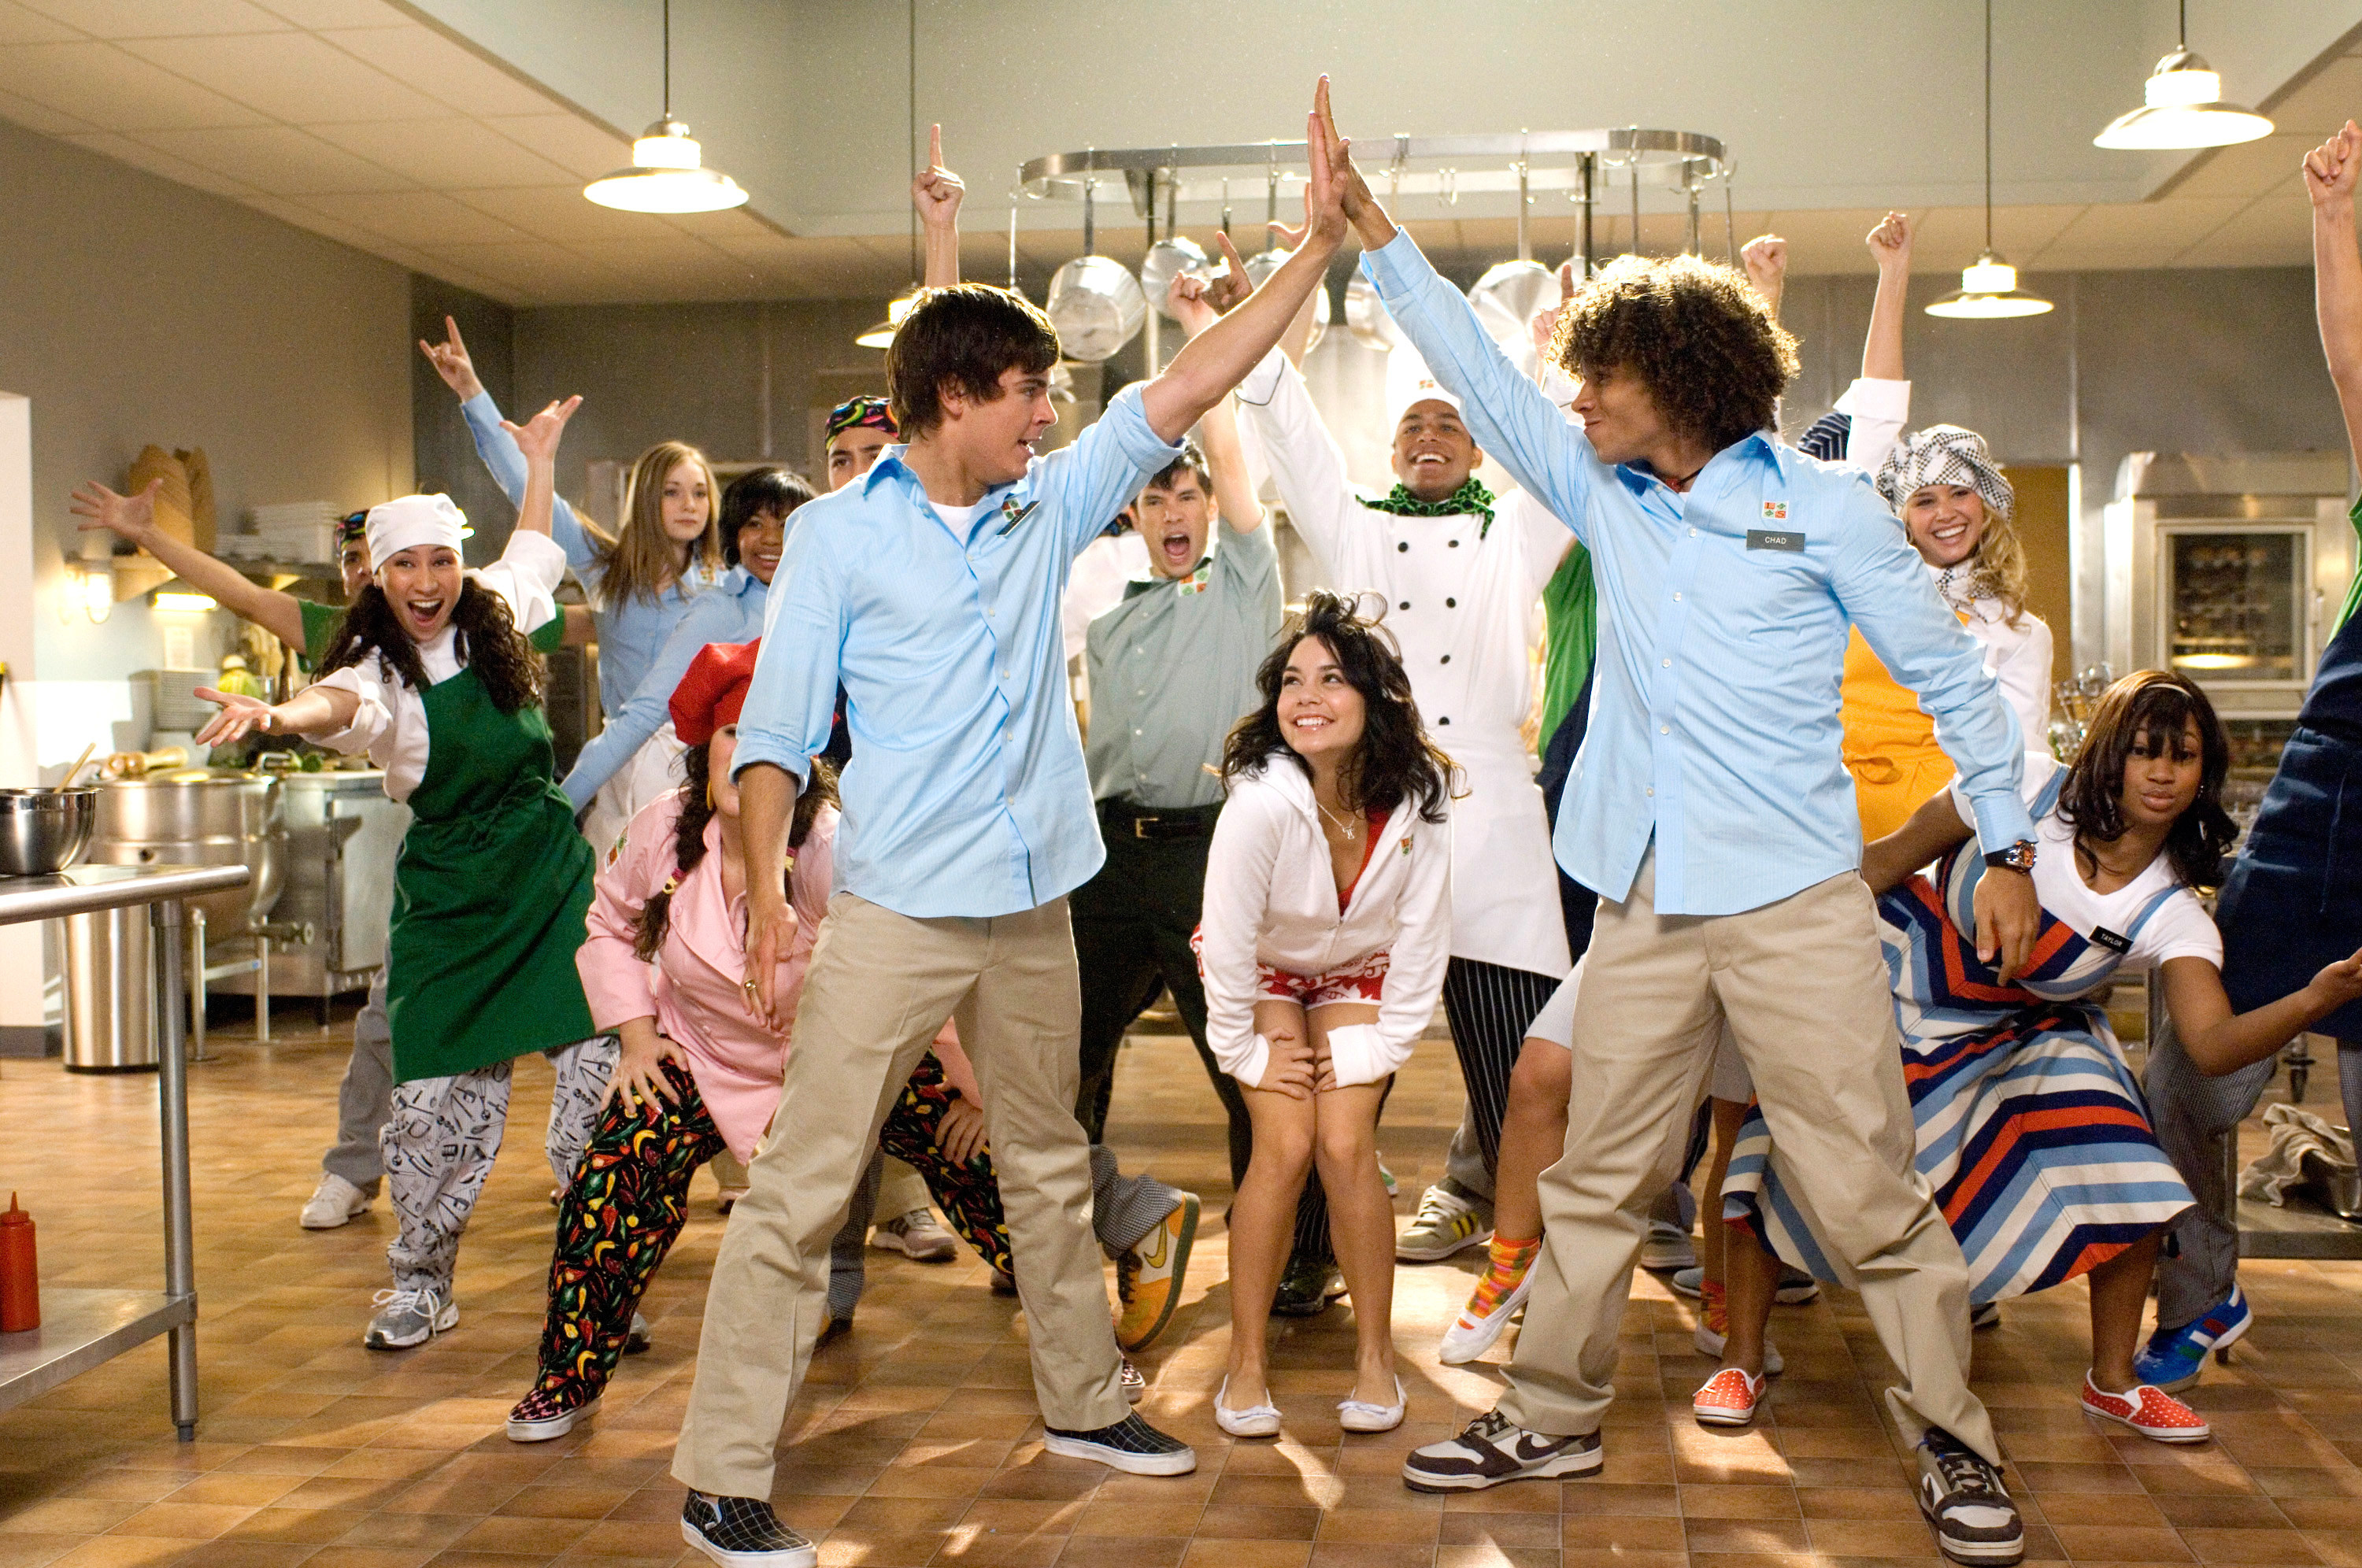 cast of high school musical dancing and singing in a kitchen